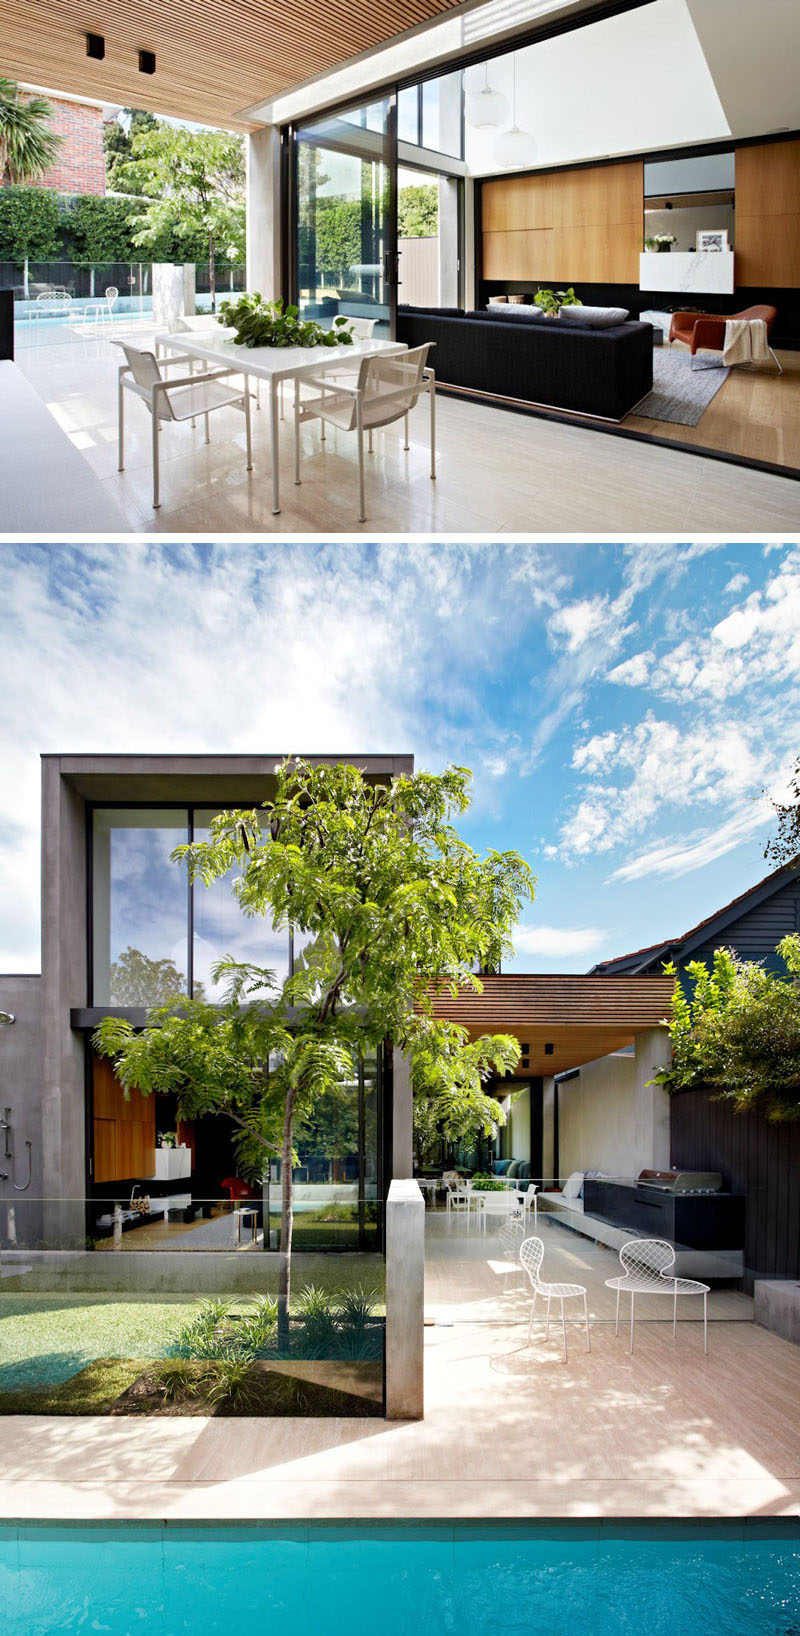 23 Awesome Australian Homes To Inspire Your Dreams Of ... on Aust Outdoor Living  id=73512